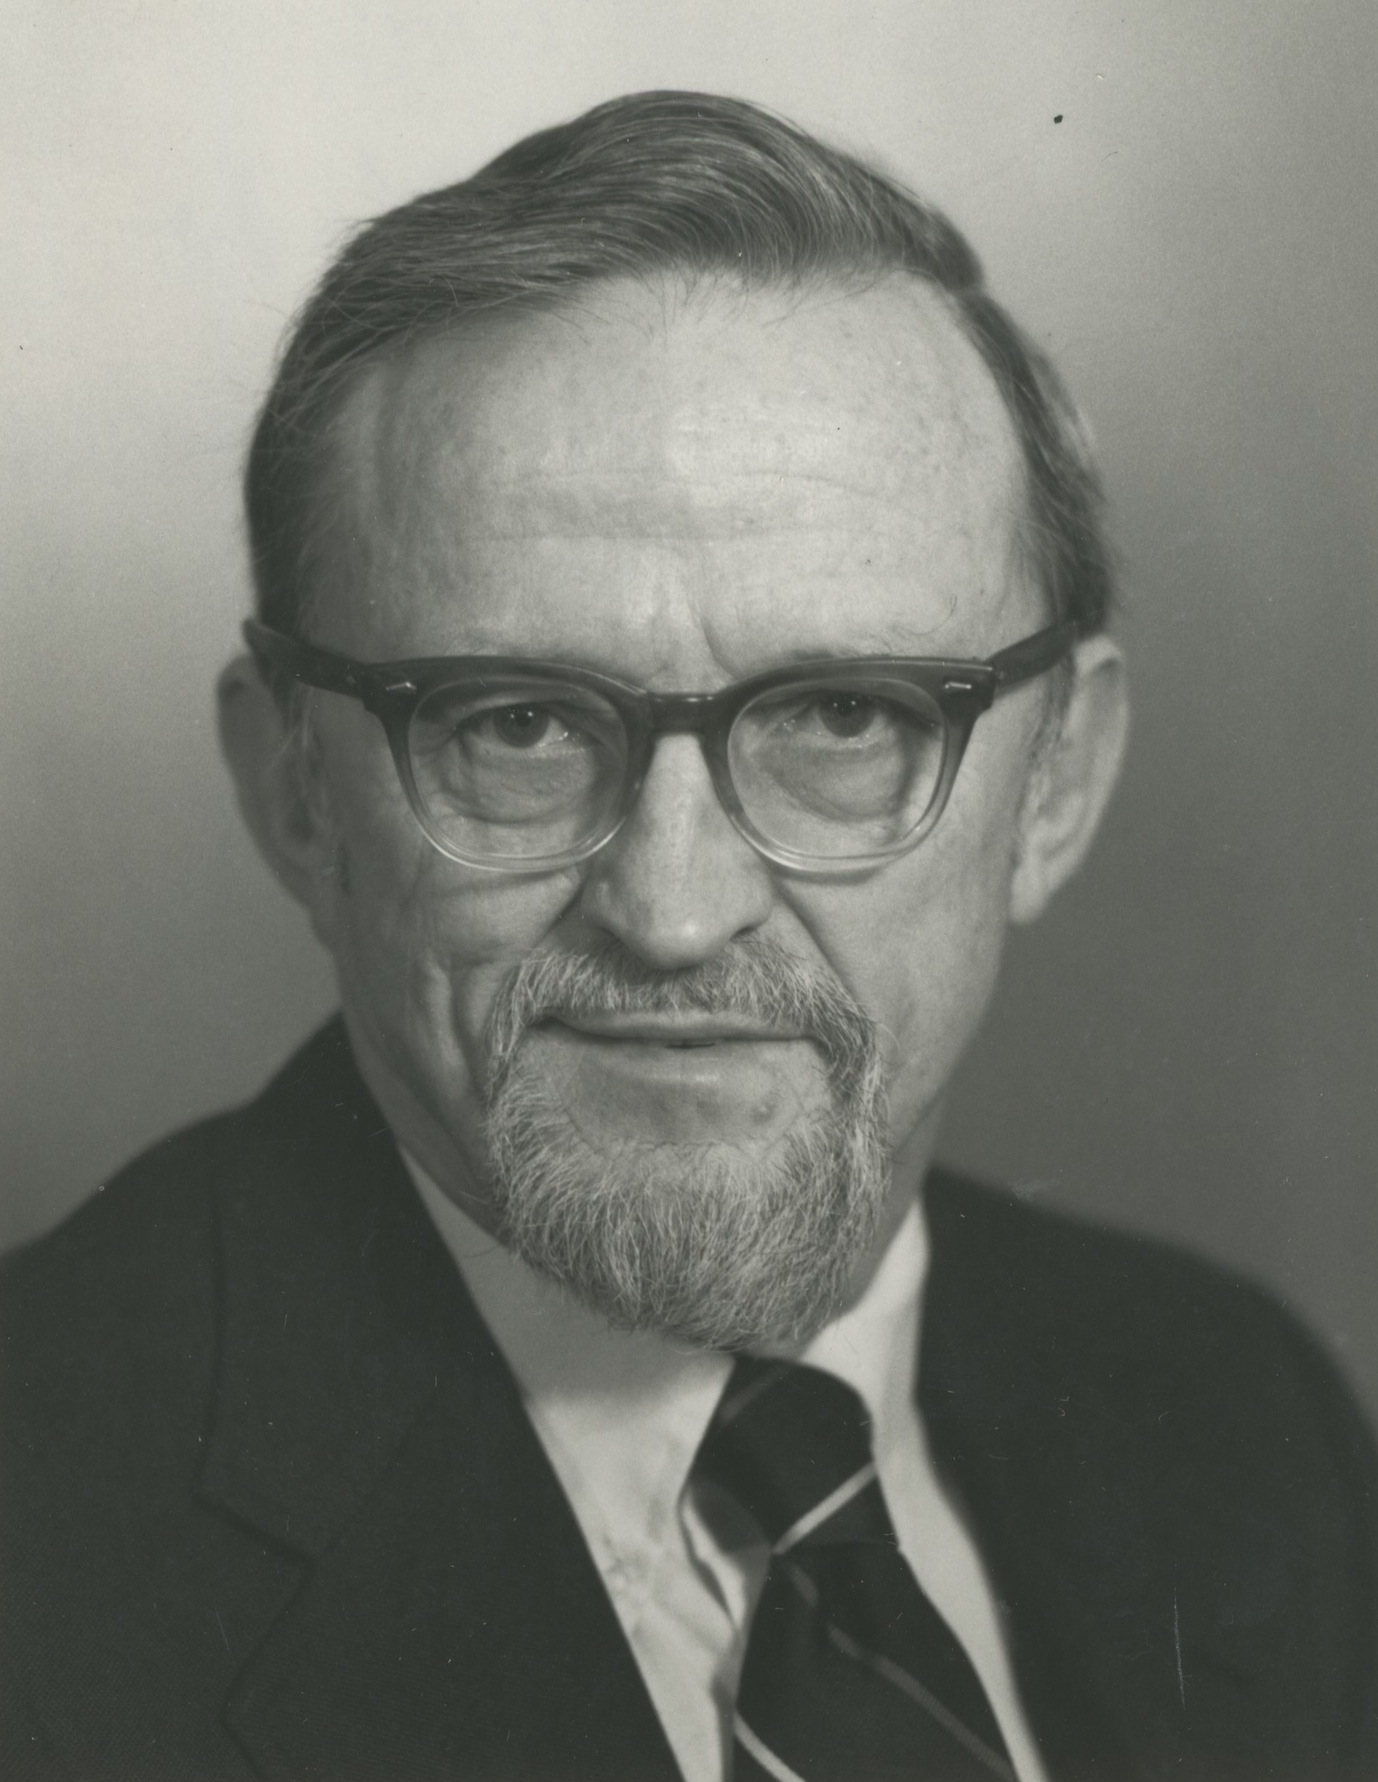 University of Michigan Professor Philip E. Converse, October 1986 image